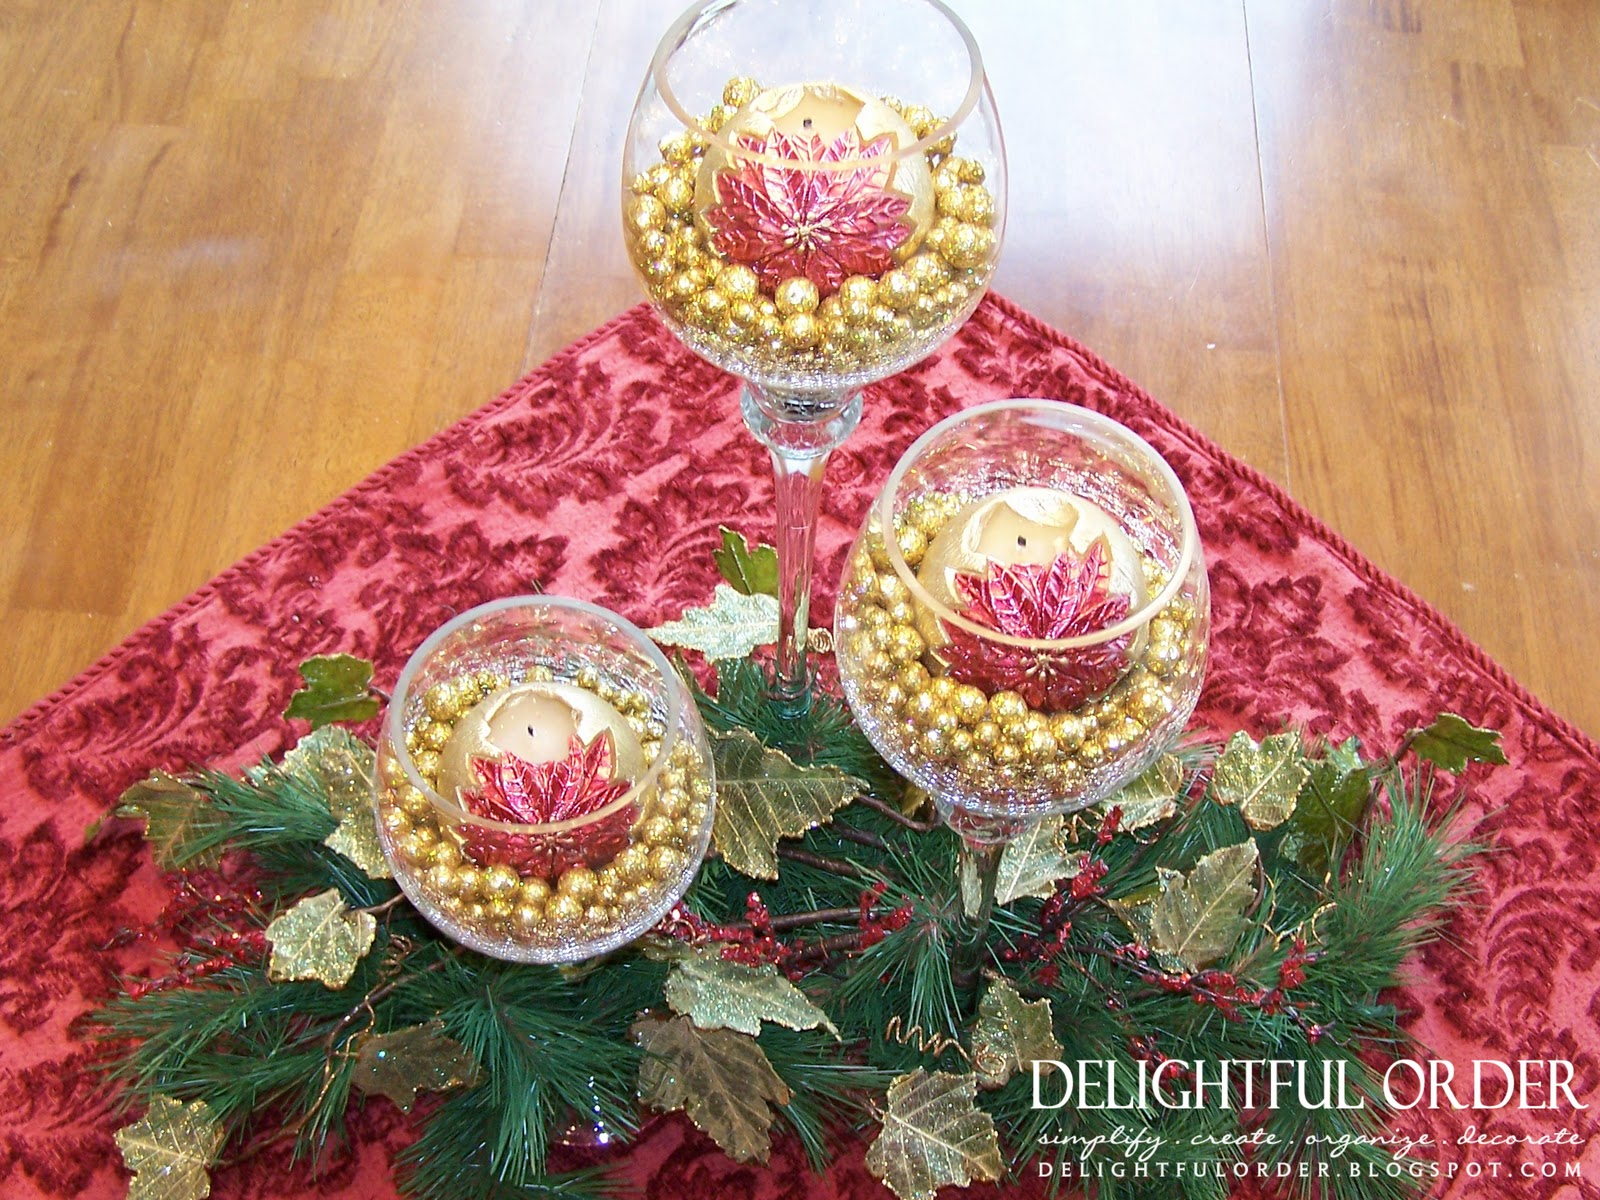 Delightful Order: Christmas Table Centerpiece